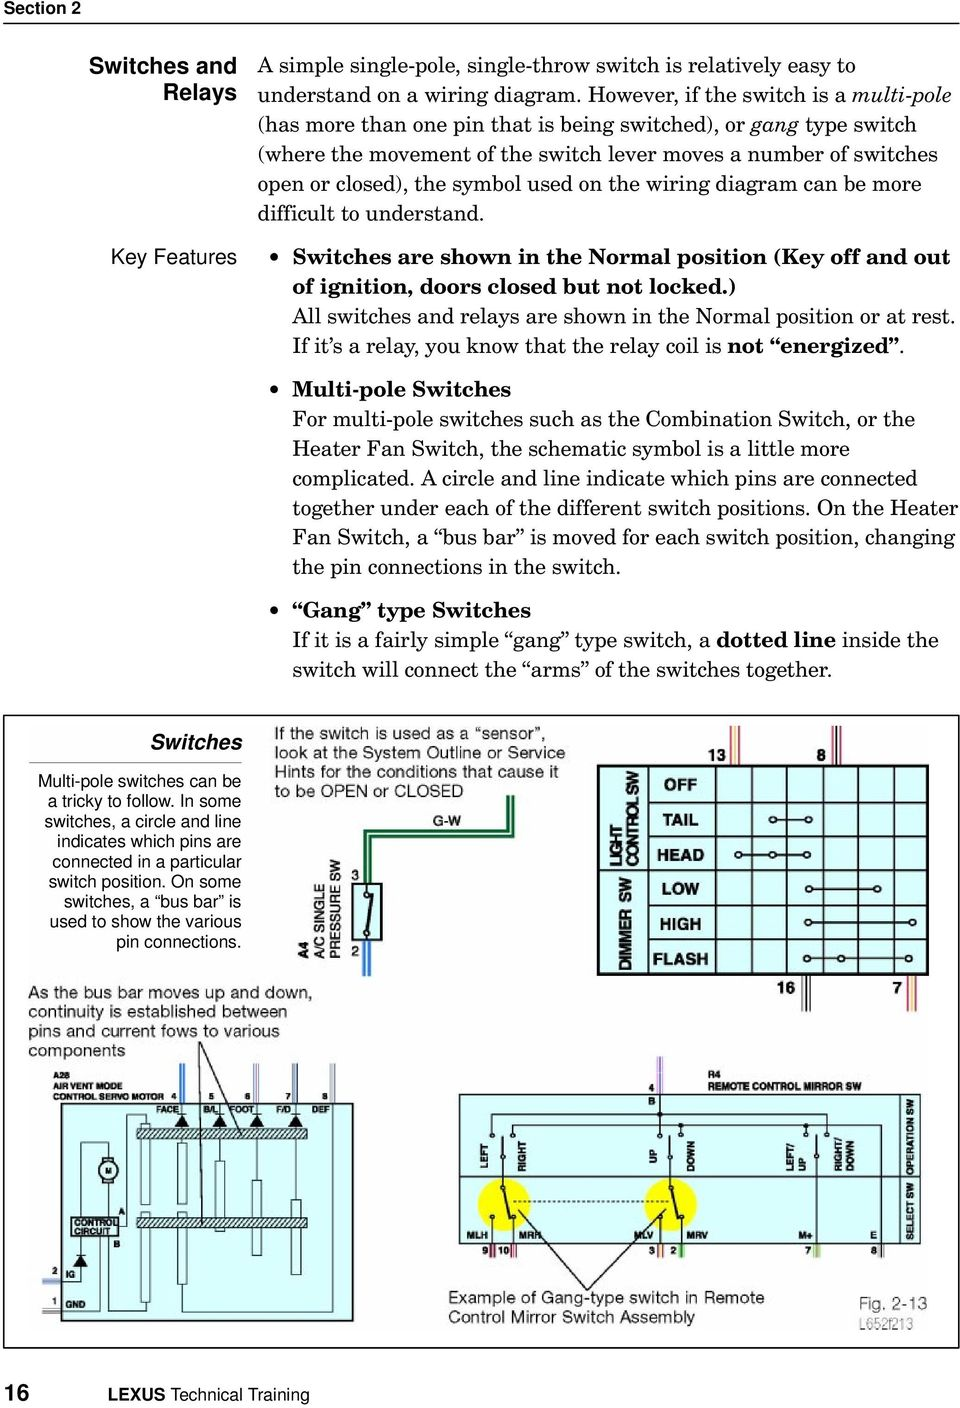 Using The Electrical Wiring Diagram Pdf Way Switch Further Dimmer Symbol Used On Can Be More Difficult To Understand Switches Are Shown